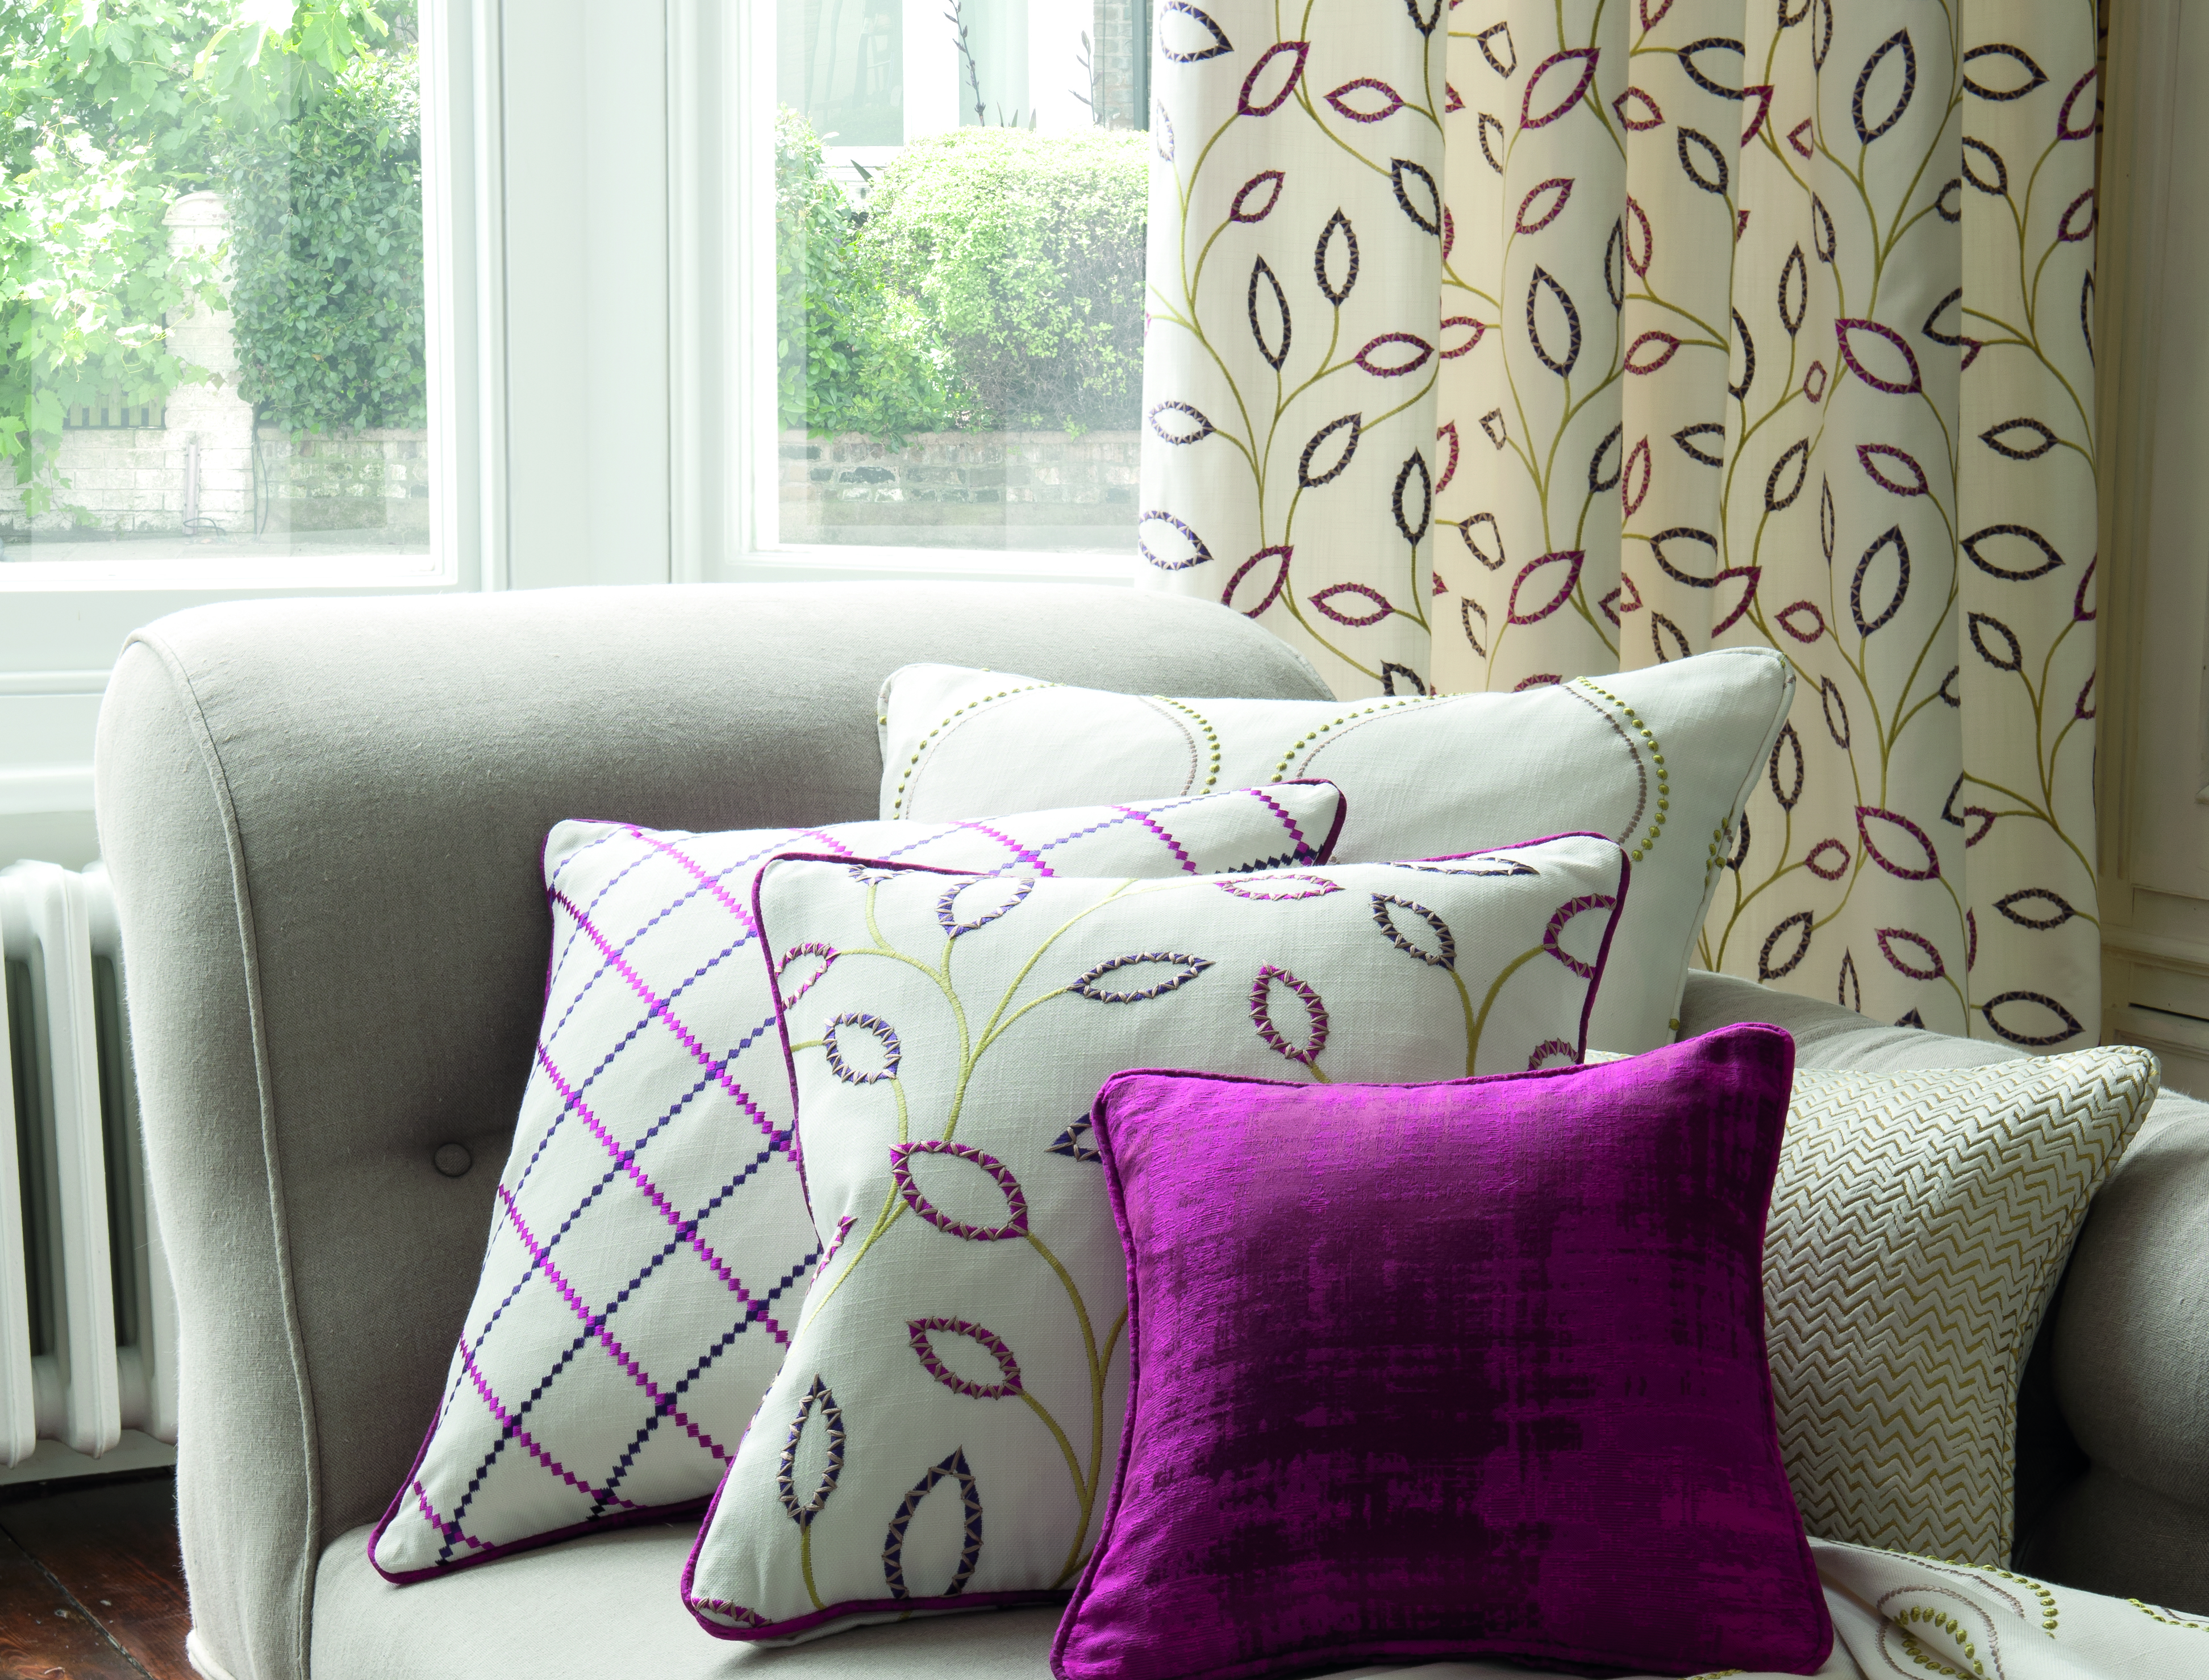 COORDINATED CUSHIONS AND ACCESSORIES